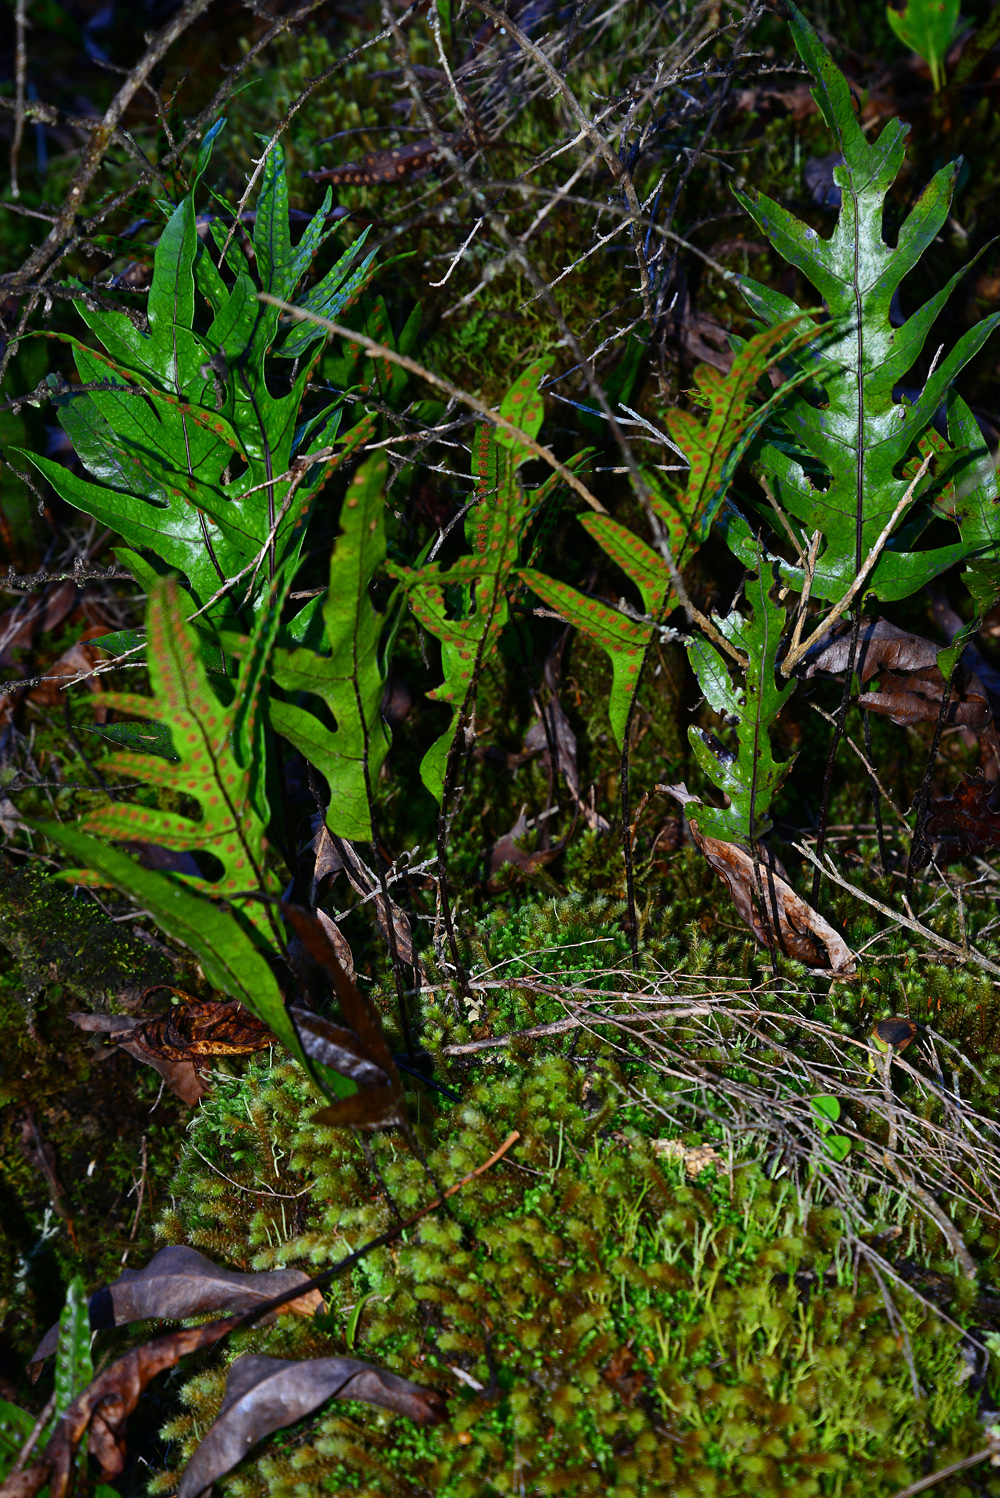 No. 4  Alpine Hounds Tongue Fern and Moss